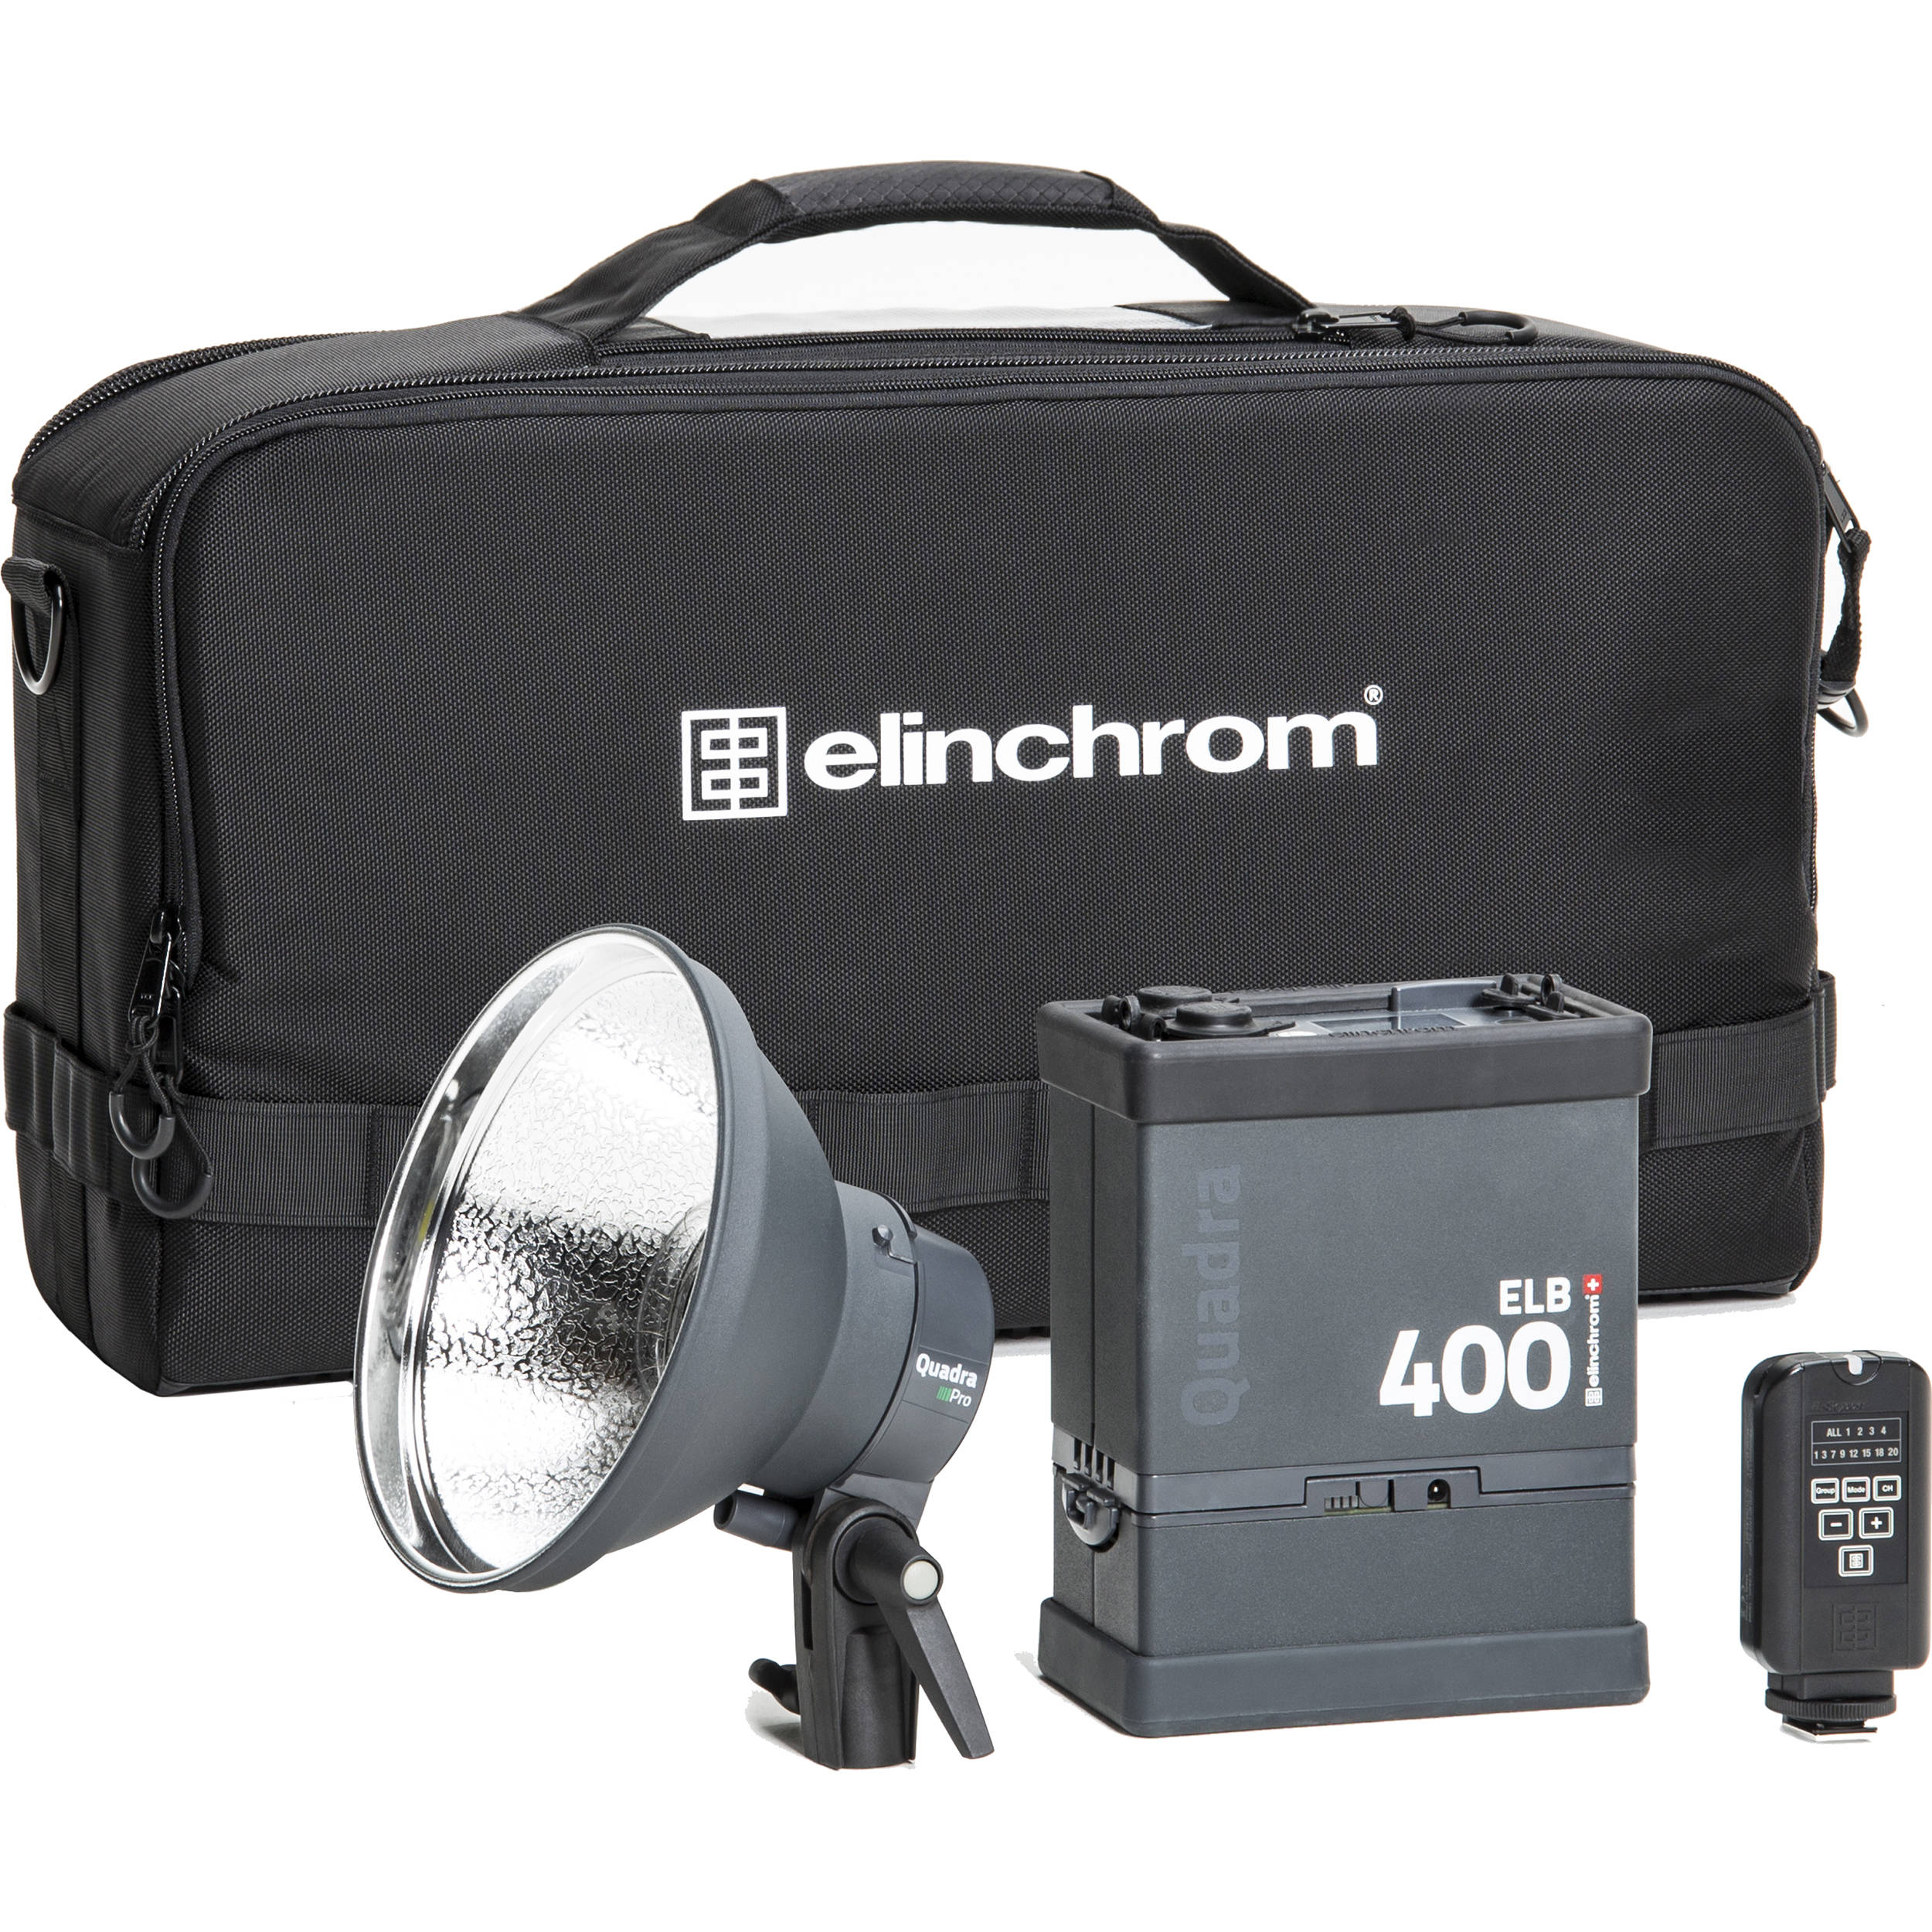 Elinchrom Frx 400 Studio Lighting Kit: Elinchrom ELB 400 Pro To Go Kit EL10419.1 B&H Photo Video